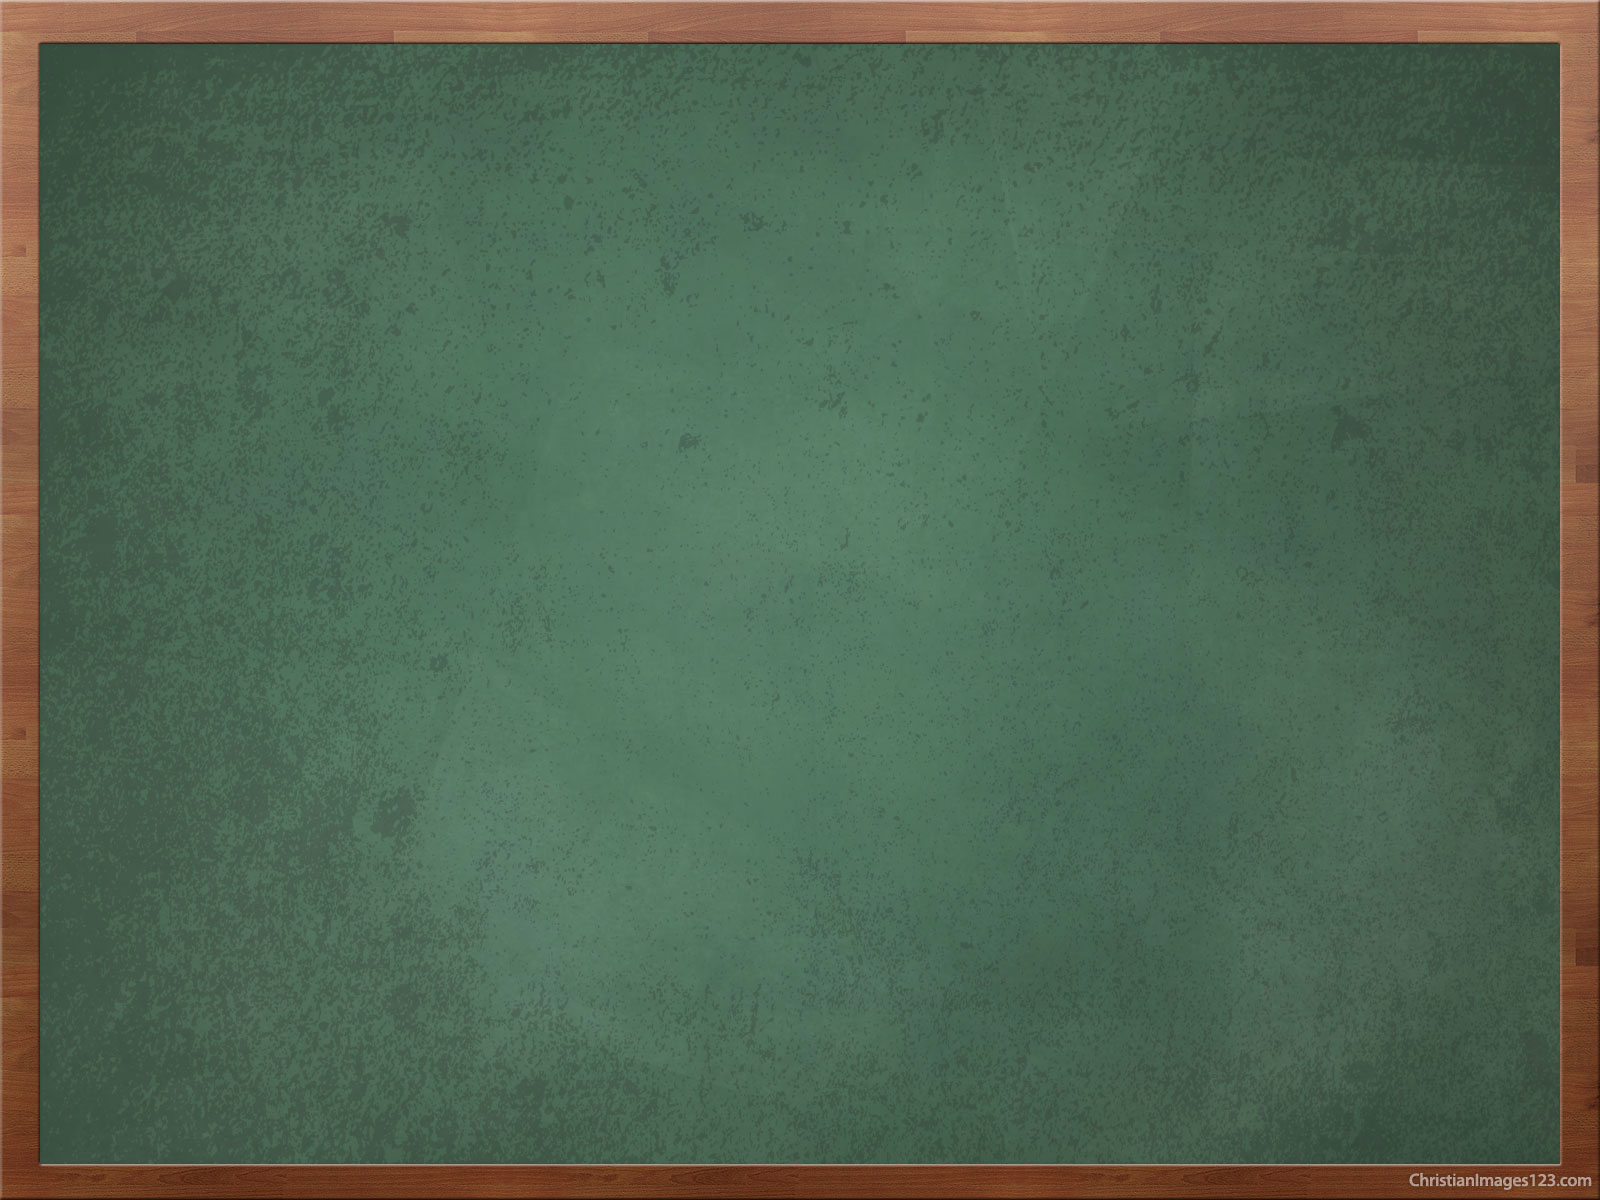 Chalkboard clipart chalkboard background. Powerpoint blackboard incep imagine